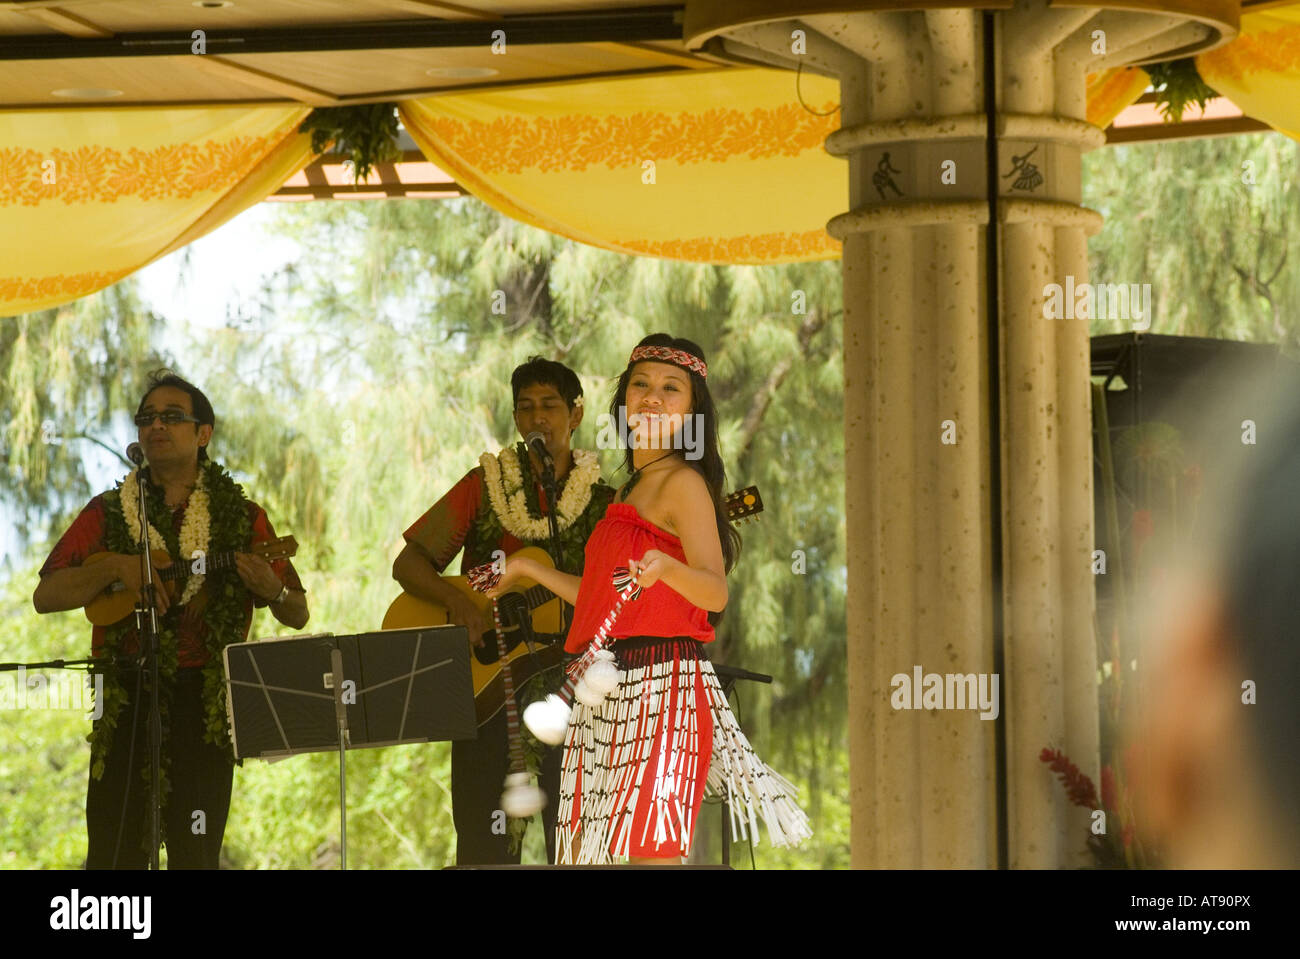 Hula dancers perform at Kapiolani park bandstand on May day, also known in Hawaii as lei day Stock Photo